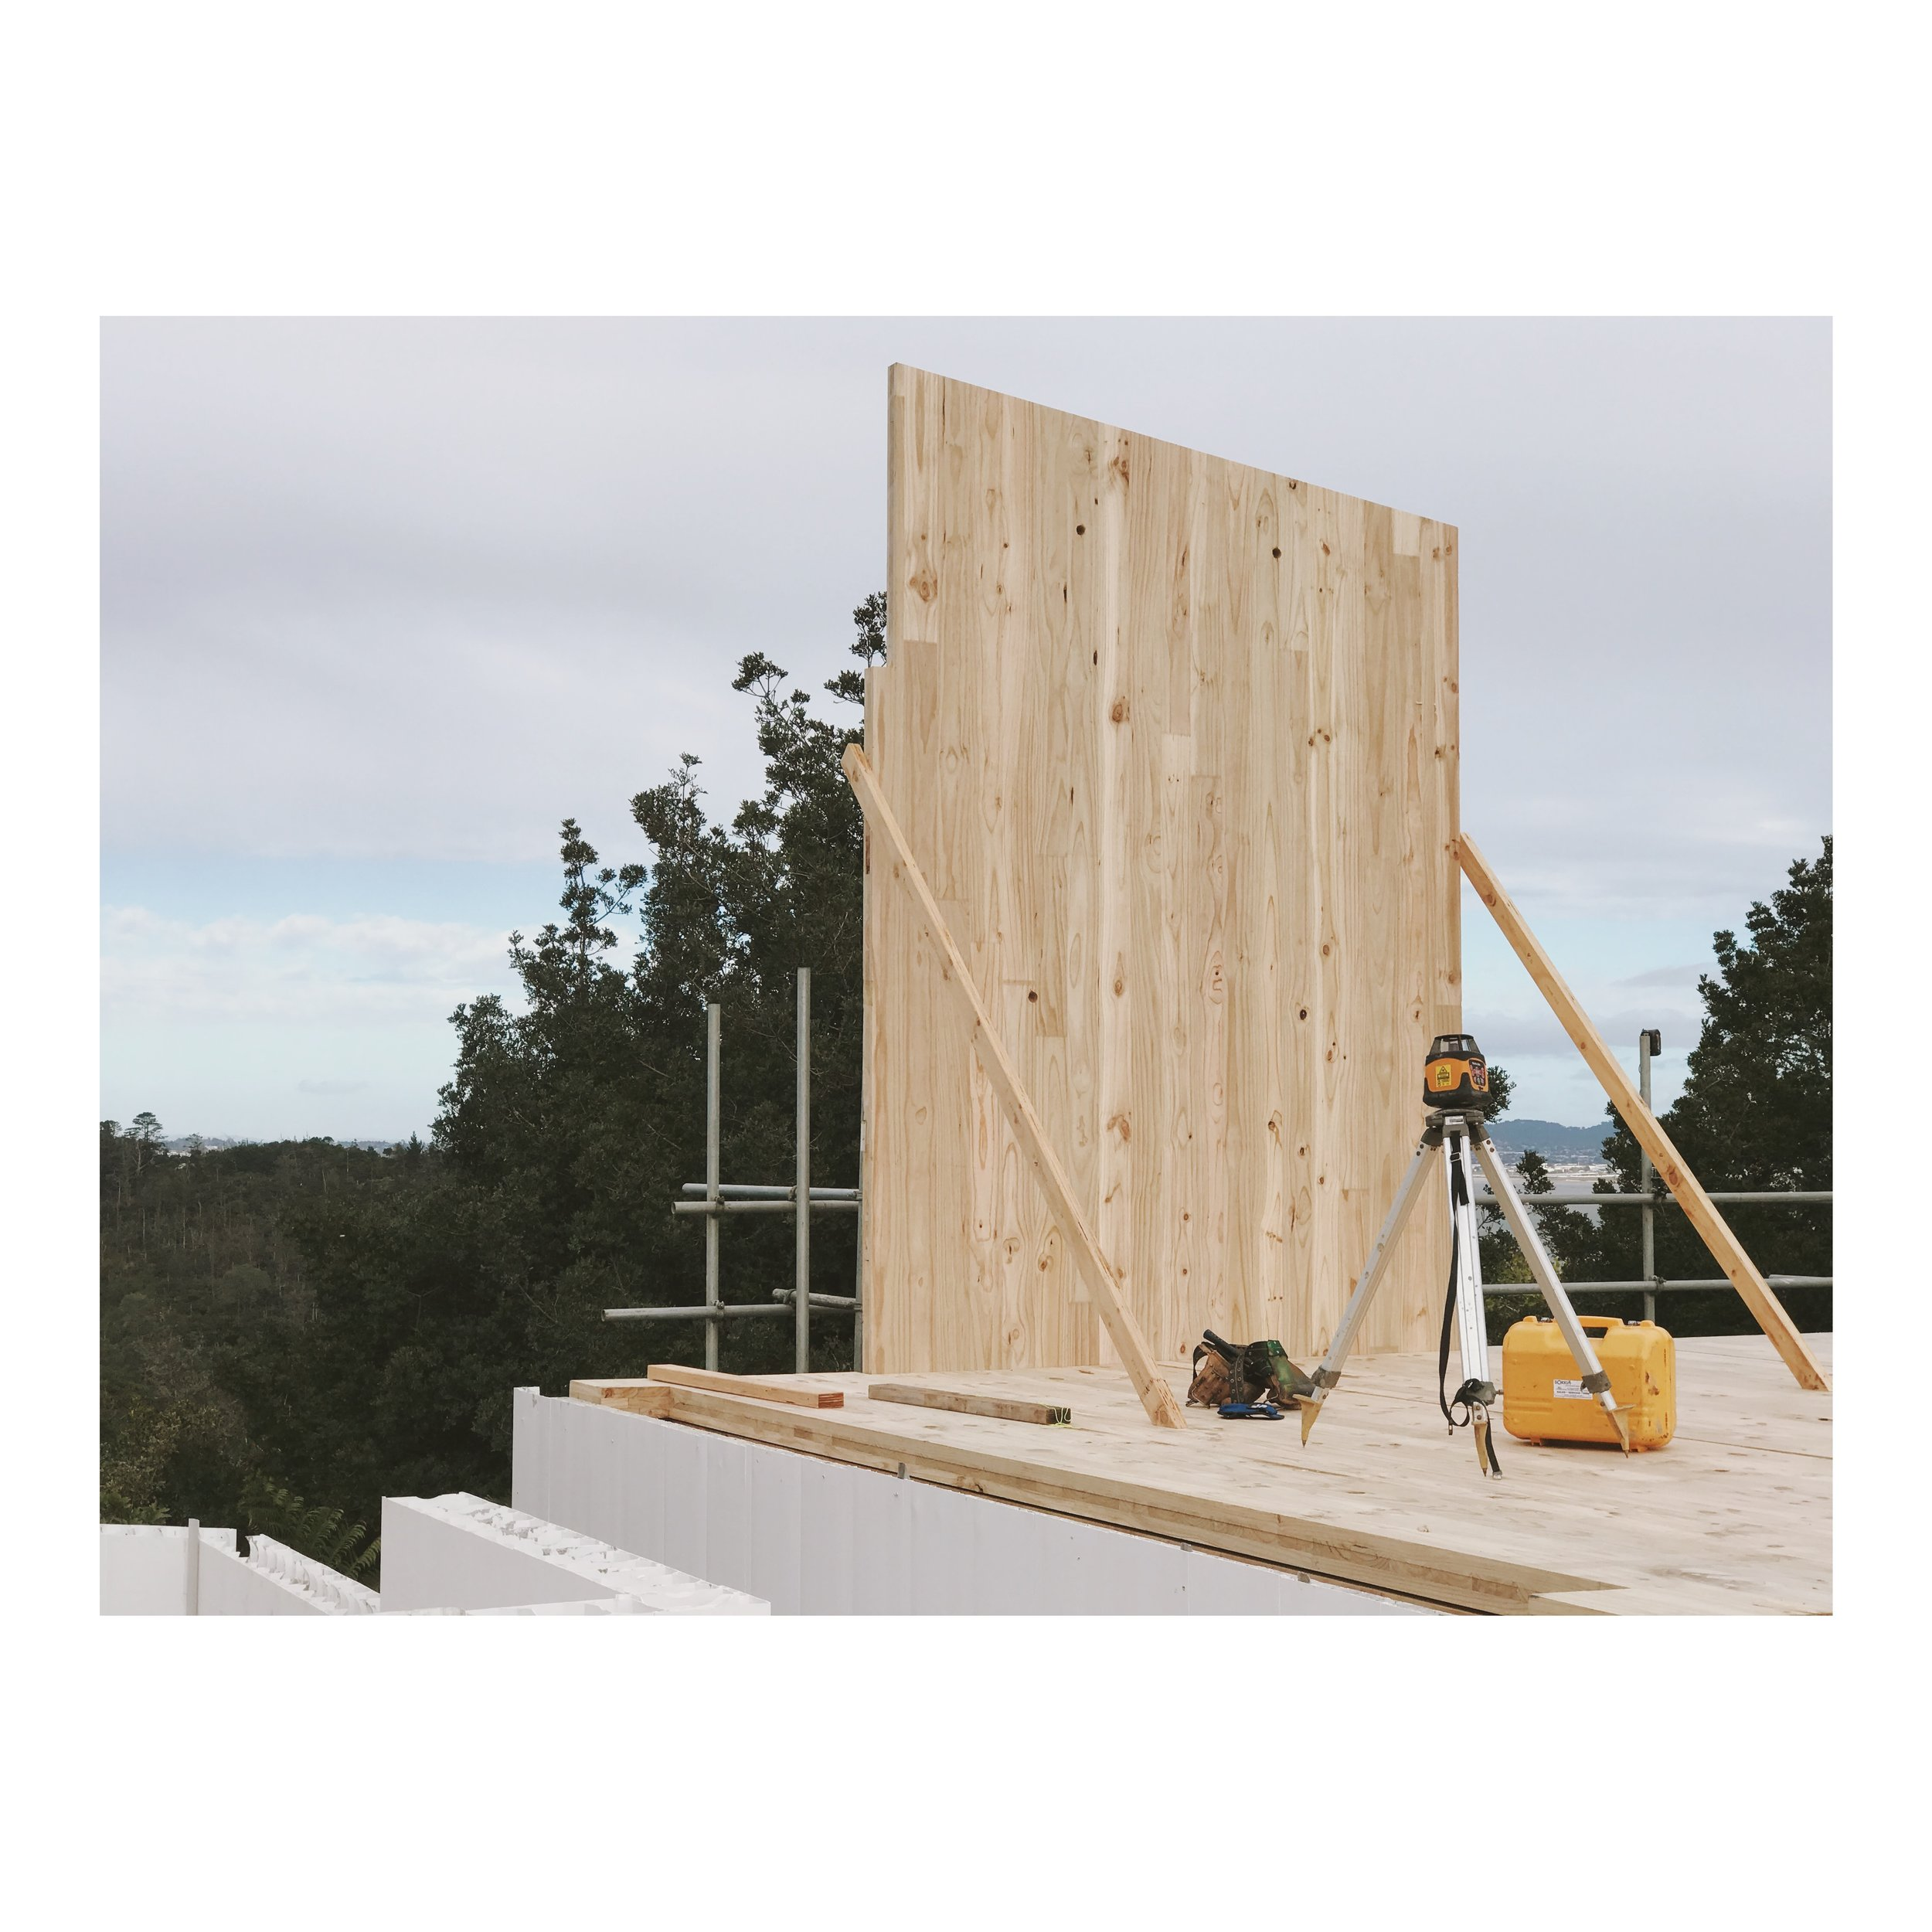 XLAM STRUCTURAL PANELS   Cross Laminated Timber is building sustainably. Building with XLam CLT panels is fast, safe, economical and good for the planet. Not to mention incredibly fast and labour saving to install.